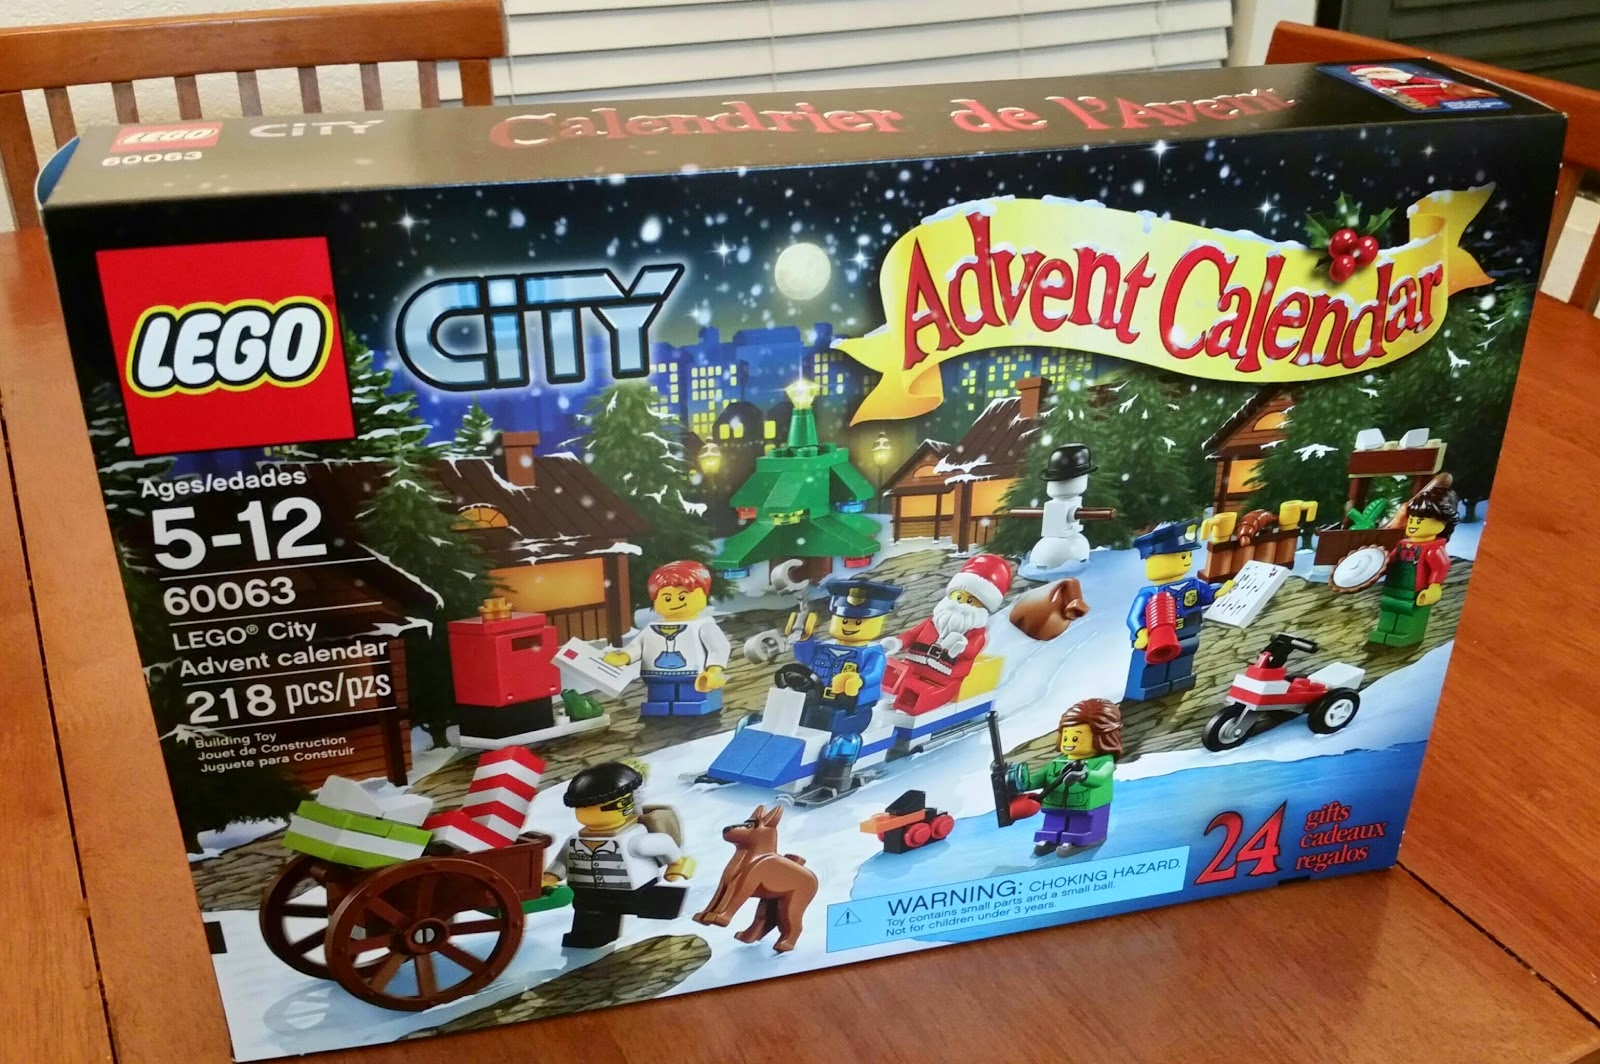 Lego Shops Adelaide Director Jewels Lego City Christmas Advent Calendar Giveaway